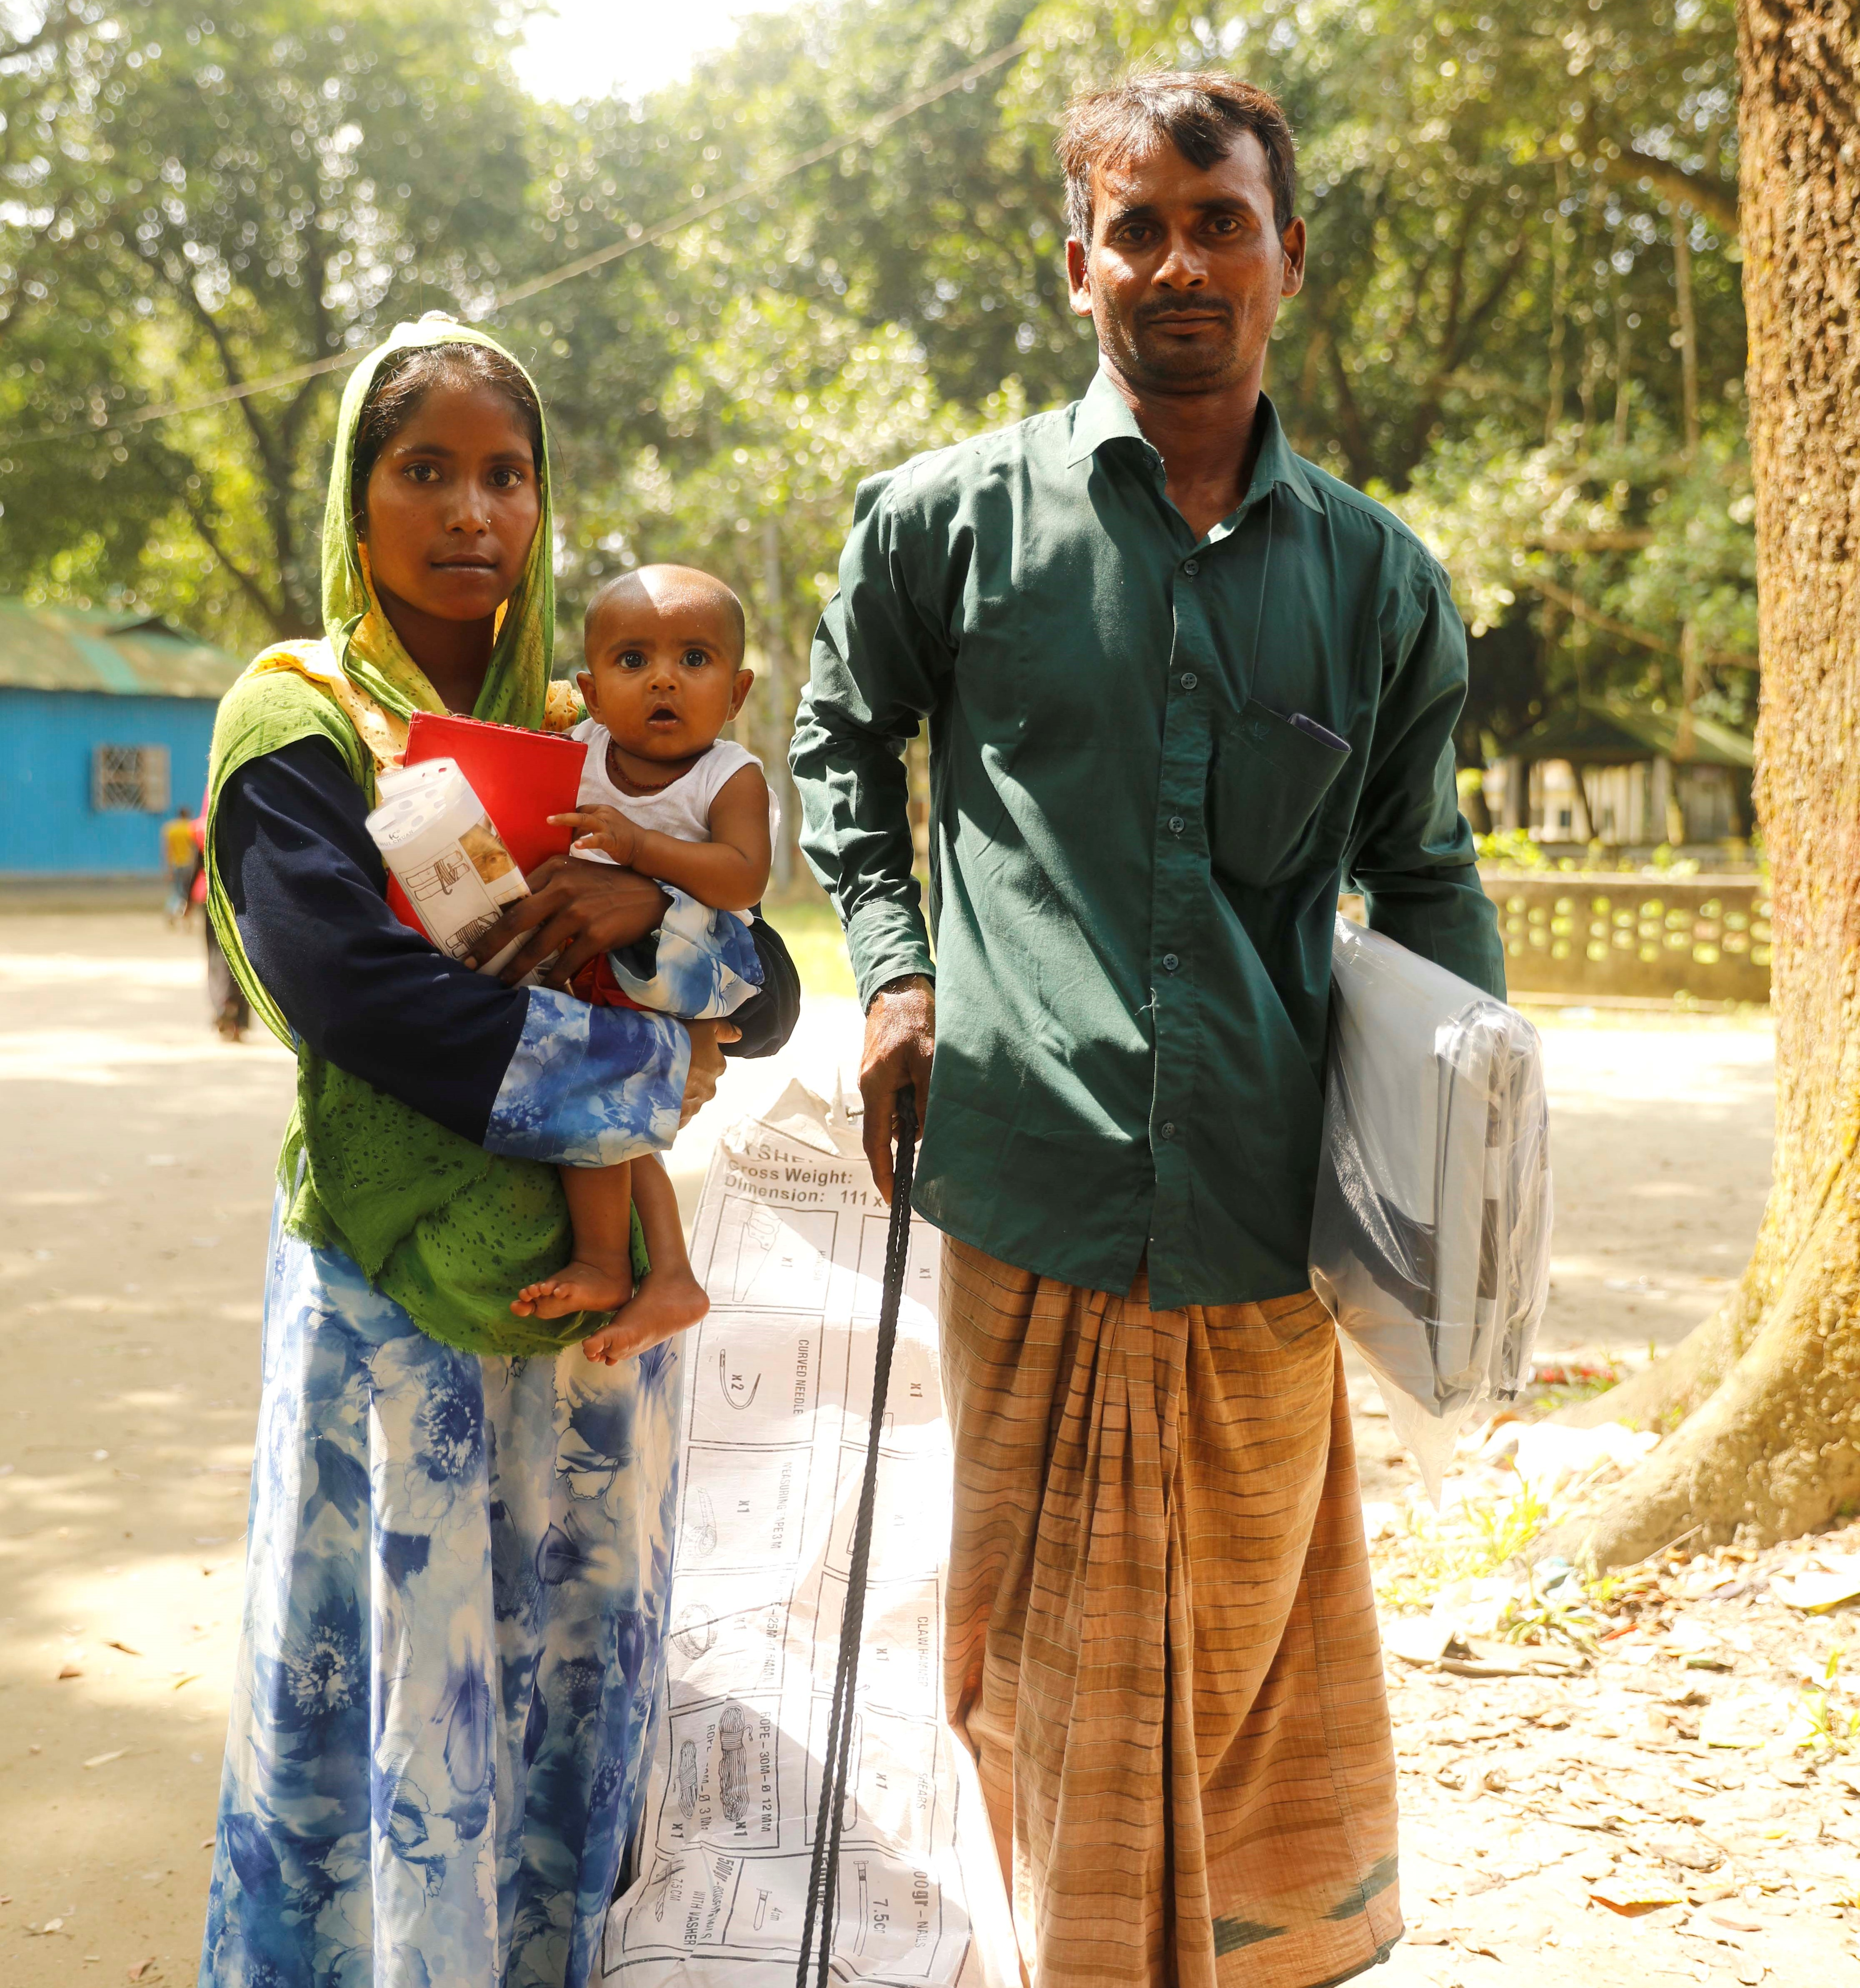 Couple with child and aid items